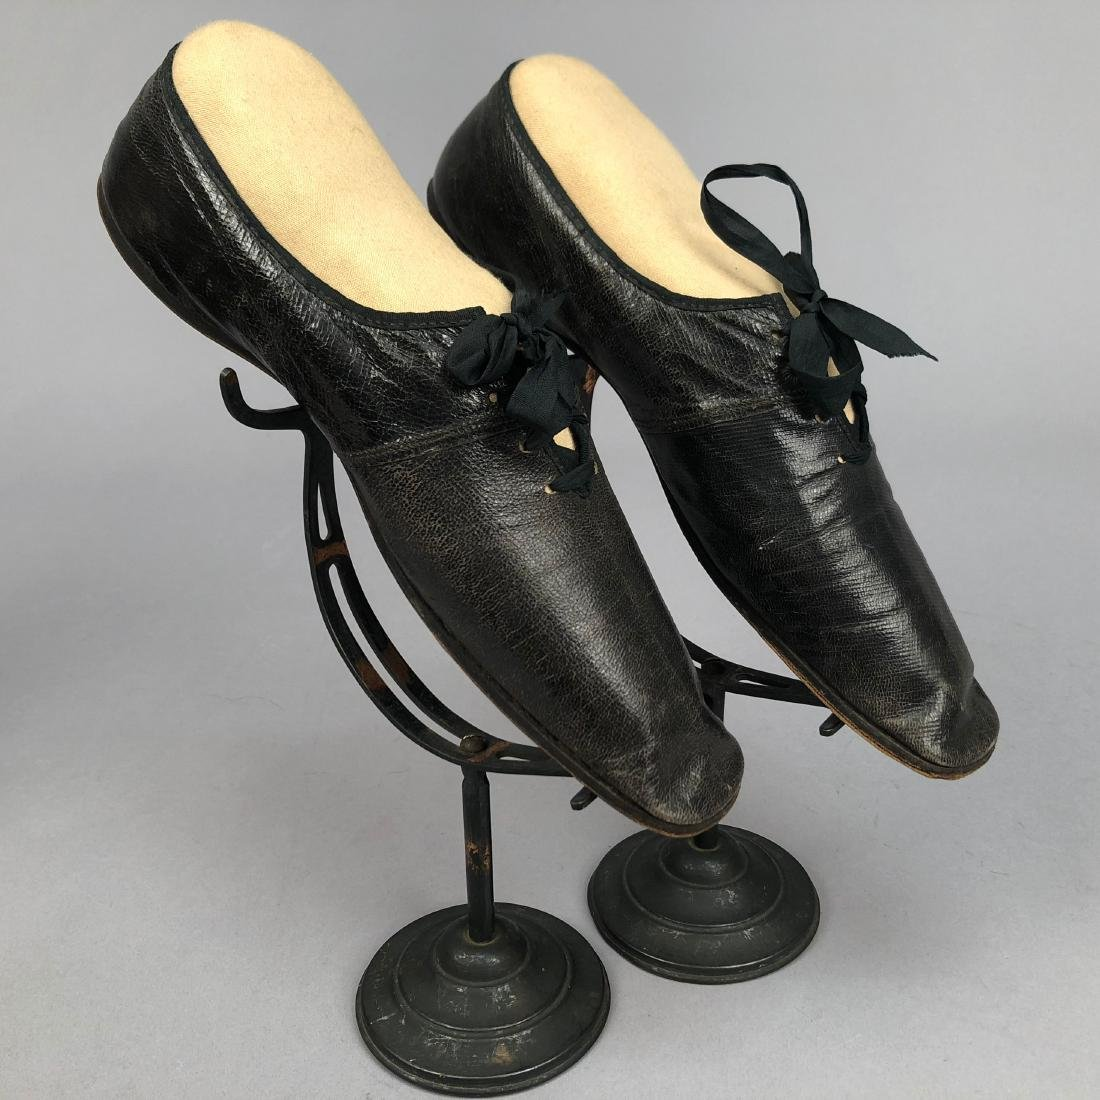 TWO PAIR LADIES' LACING SHOES, 1840s - 3